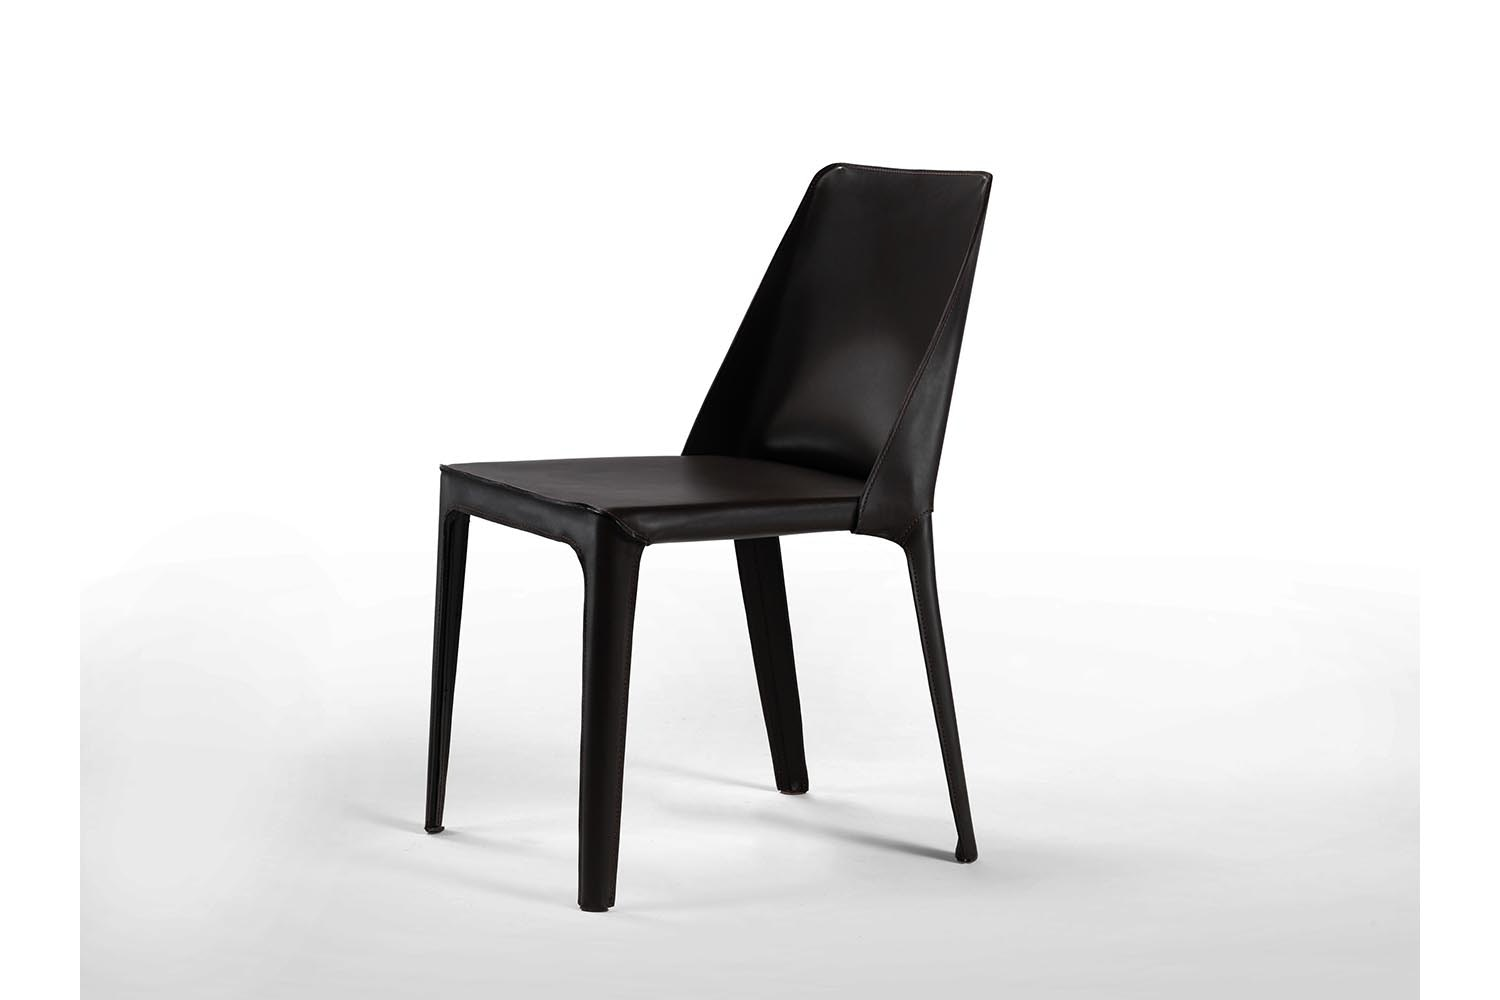 ISABEL by Carlo Colombo for Flexform